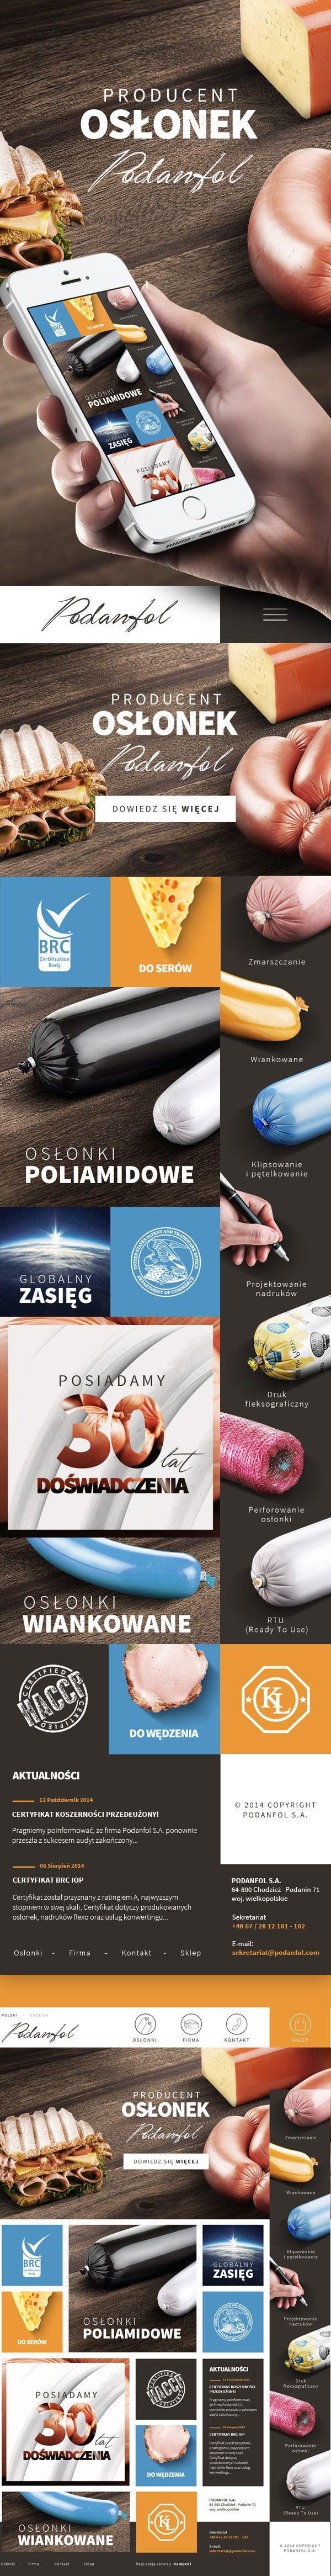 Podanfol Casings Manufacturer by Paweł Skupień, via Behance